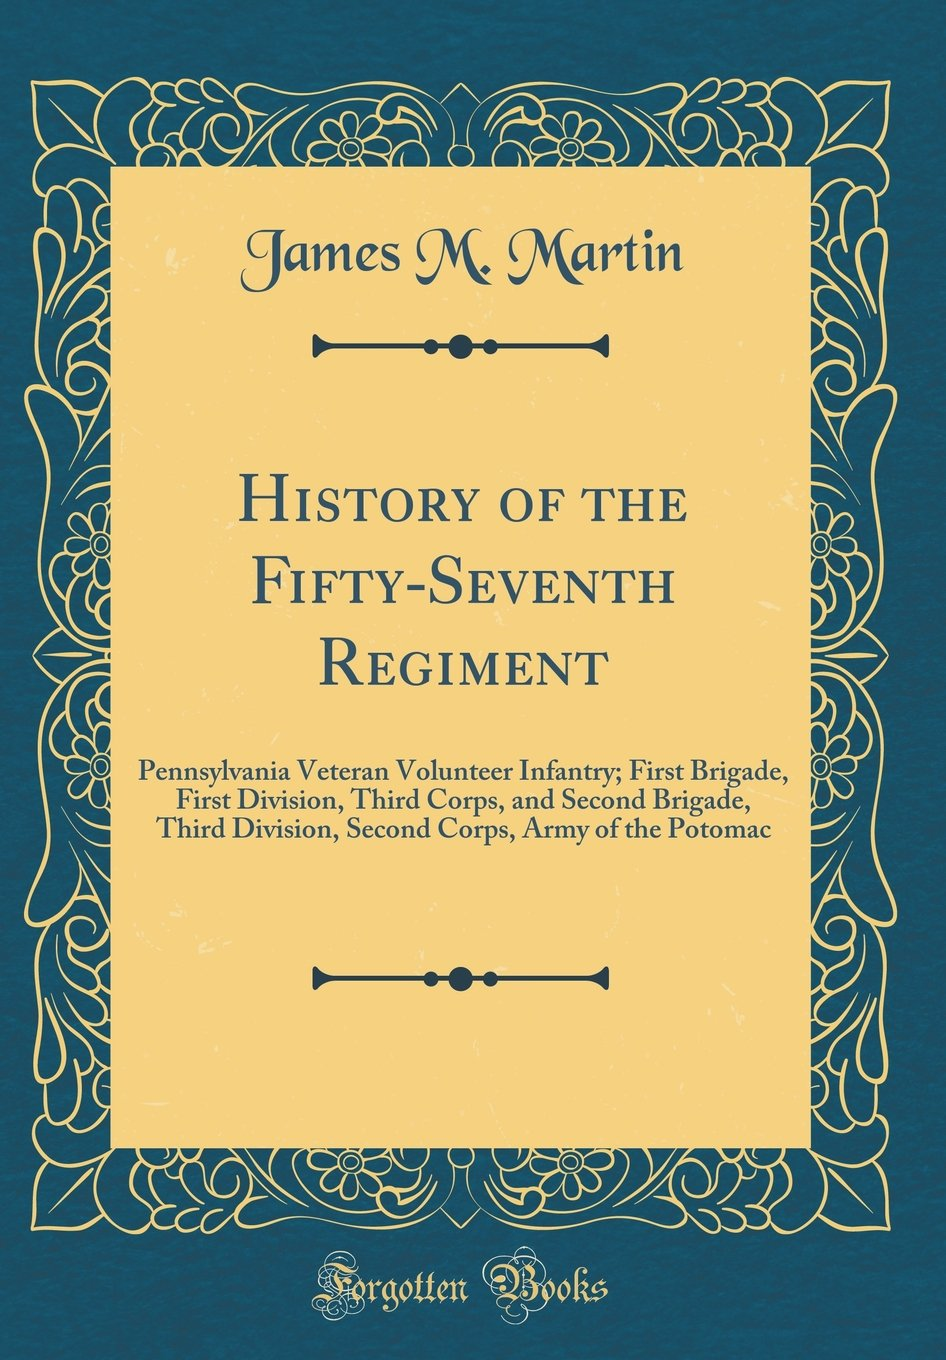 History of the Fifty-Seventh Regiment: Pennsylvania Veteran Volunteer Infantry; First Brigade, First Division, Third Corps, and Second Brigade, Third ... Corps, Army of the Potomac (Classic Reprint) Text fb2 ebook